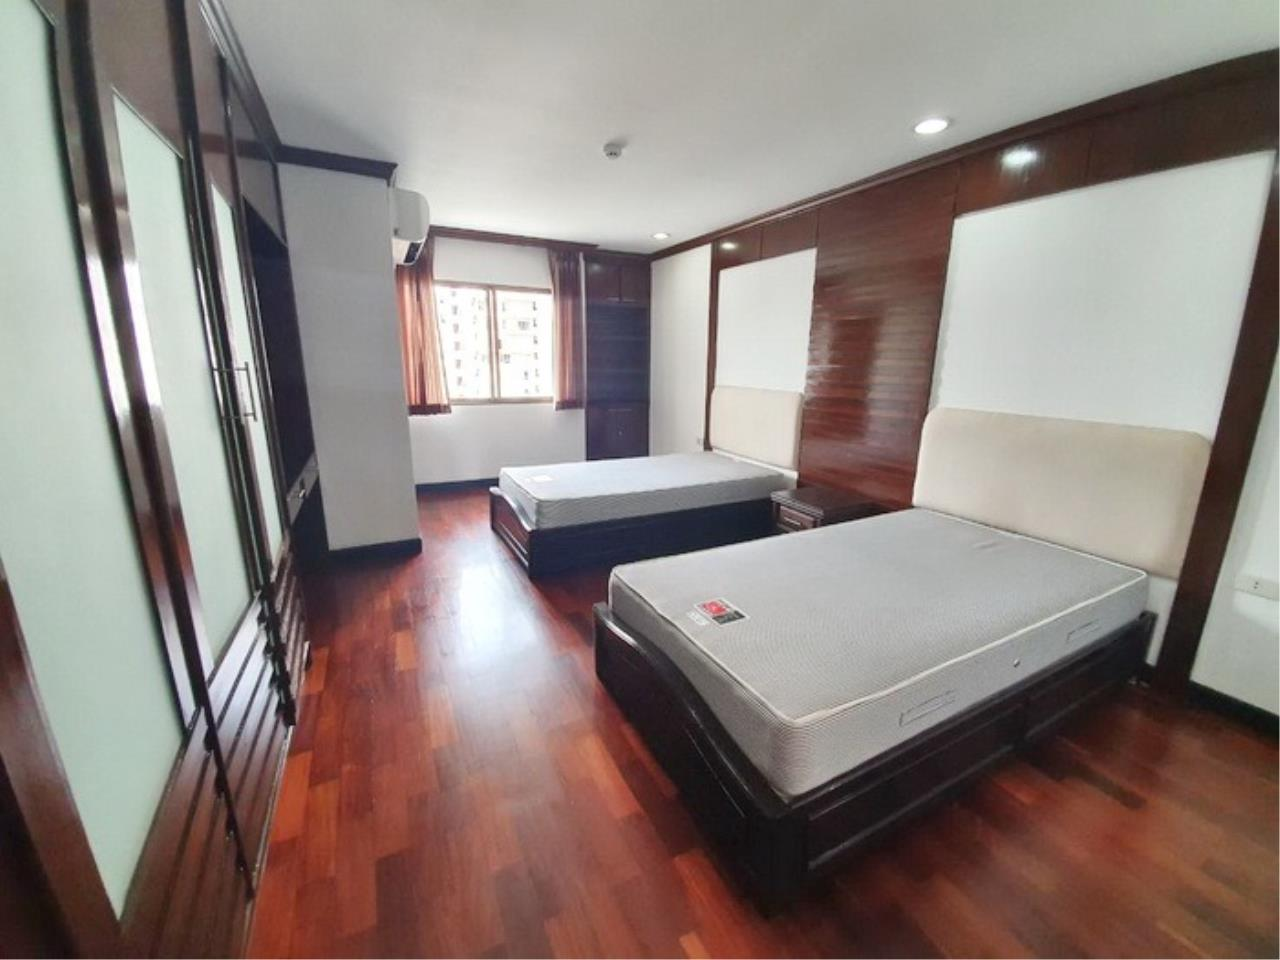 Bestbkkcondos Agency's regent on the park 1 - 250 Sq.M - for rent: 60000 THB - 3 bedrooms,3 bathrooms 7